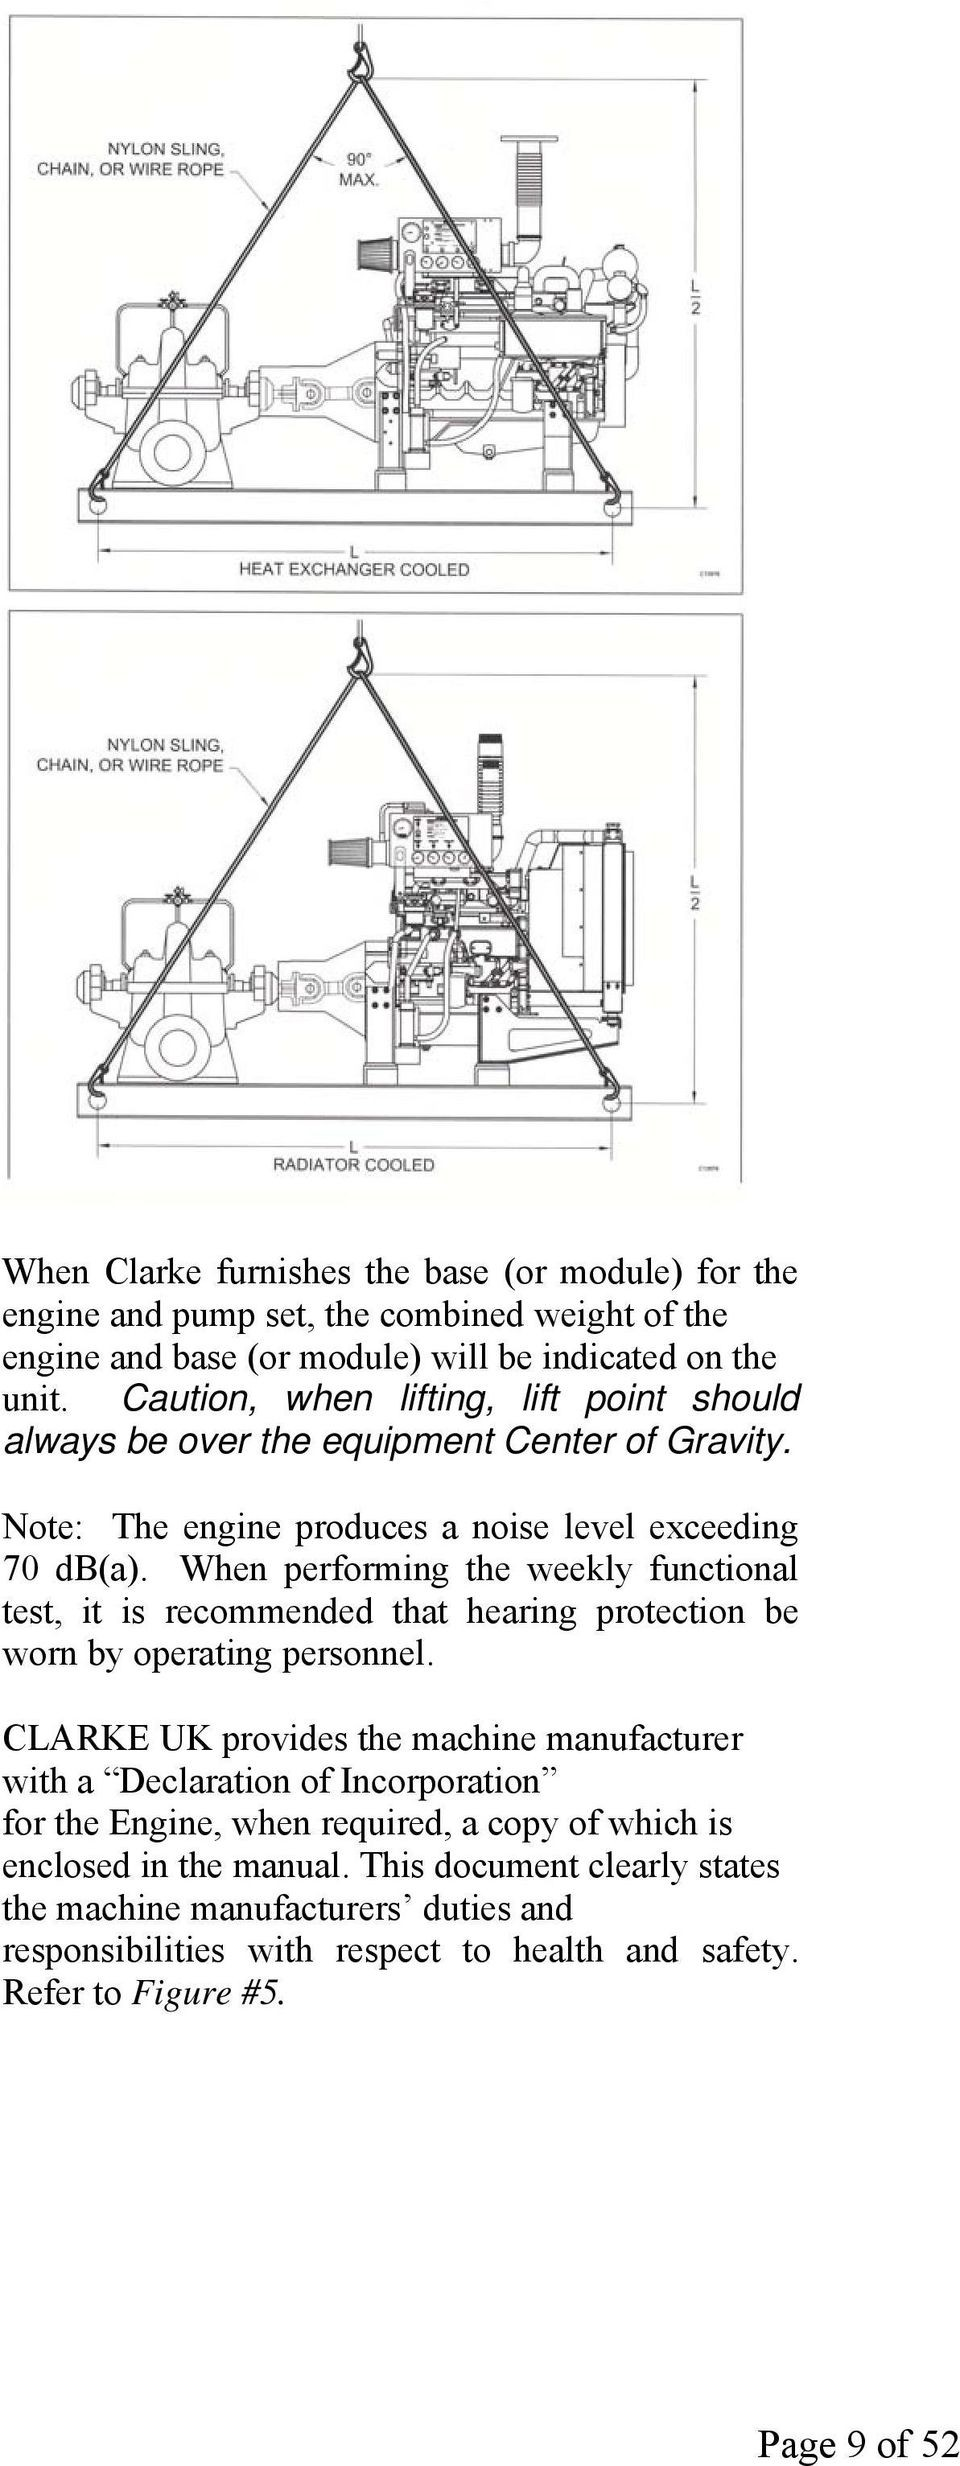 Mbe 4000 Engine Diagram Operation and Maintenance Instructions Manual Pdf Of Mbe 4000 Engine Diagram